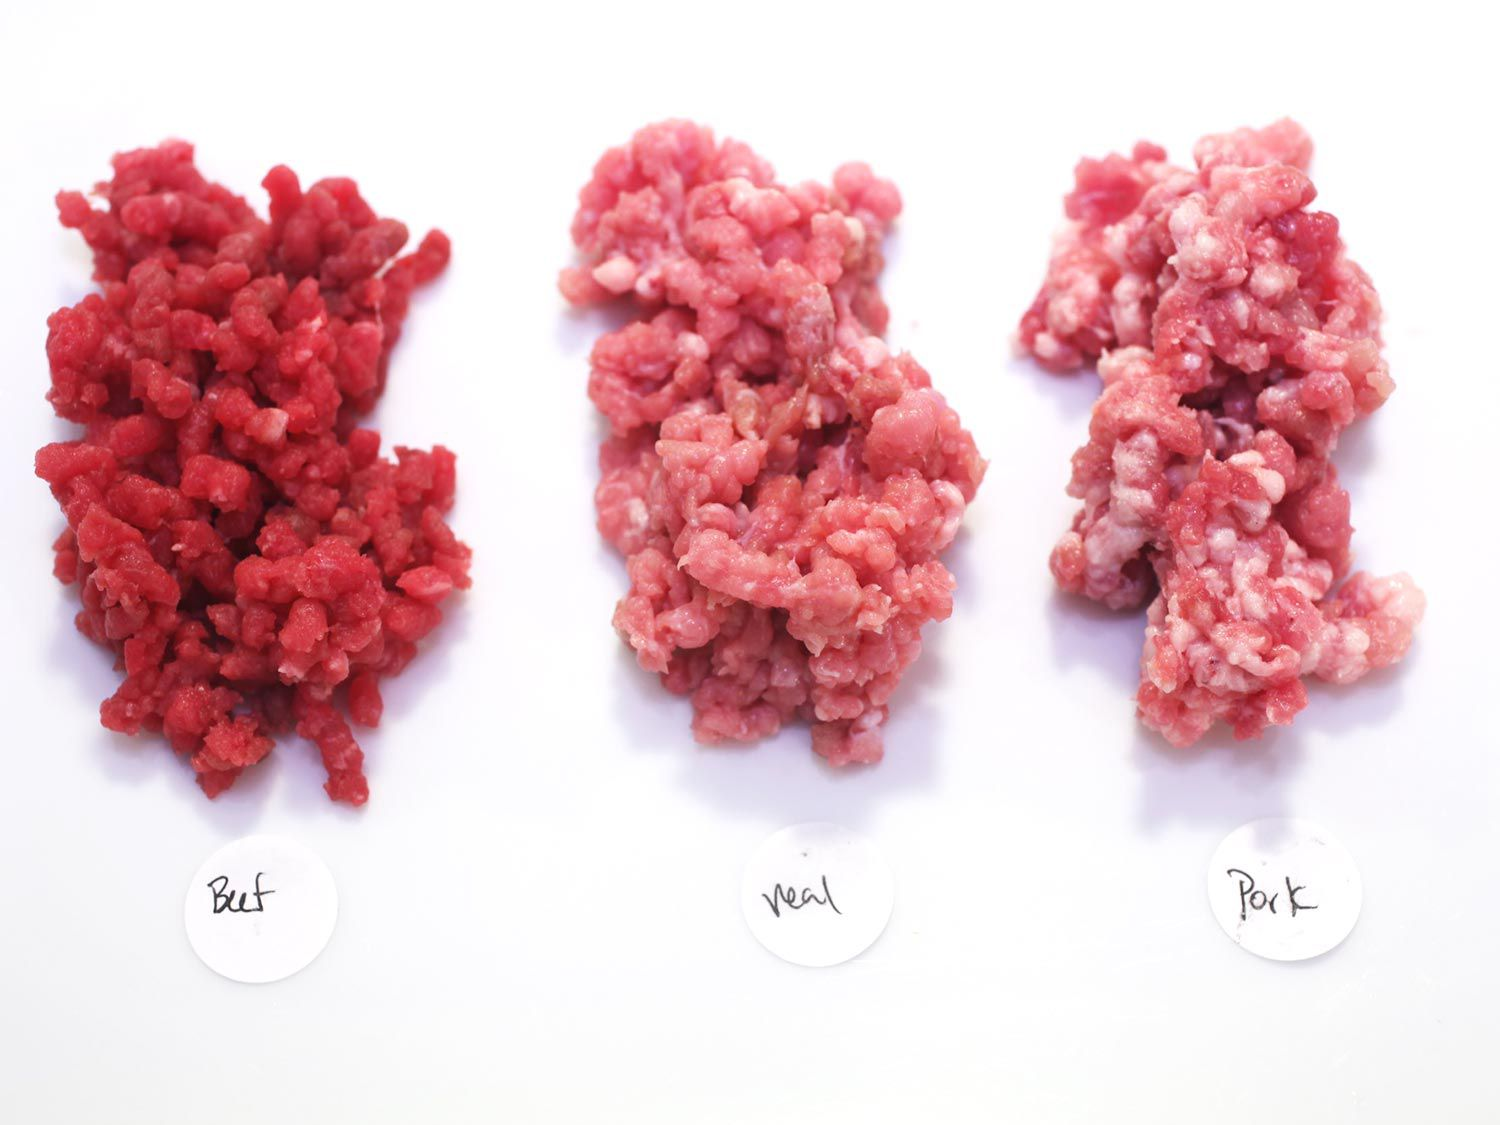 comparing raw ground beef, veal and pork